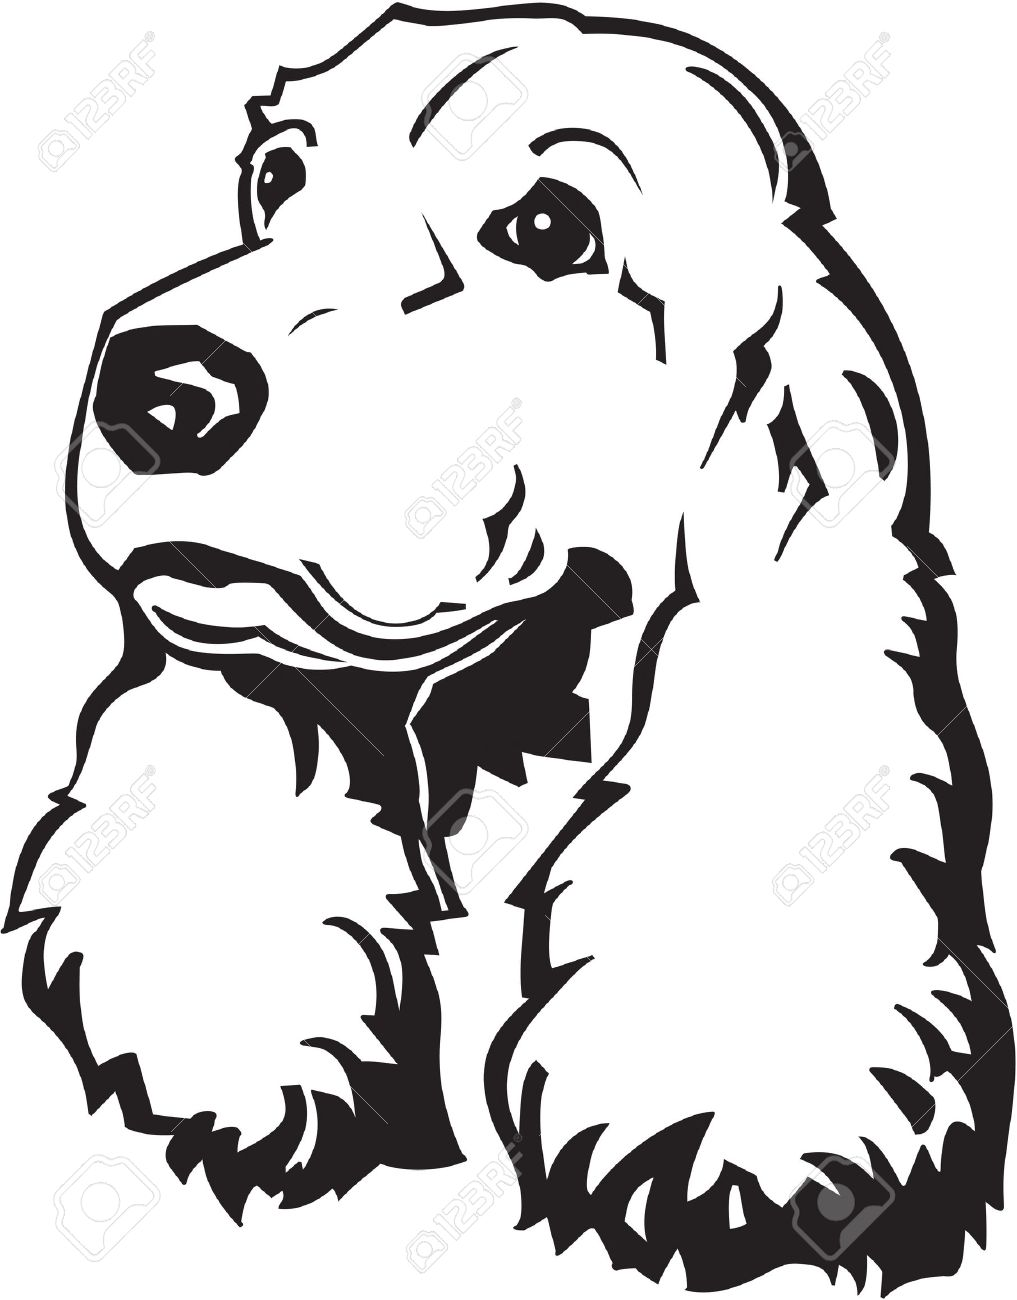 Cocker spaniel head clipart.